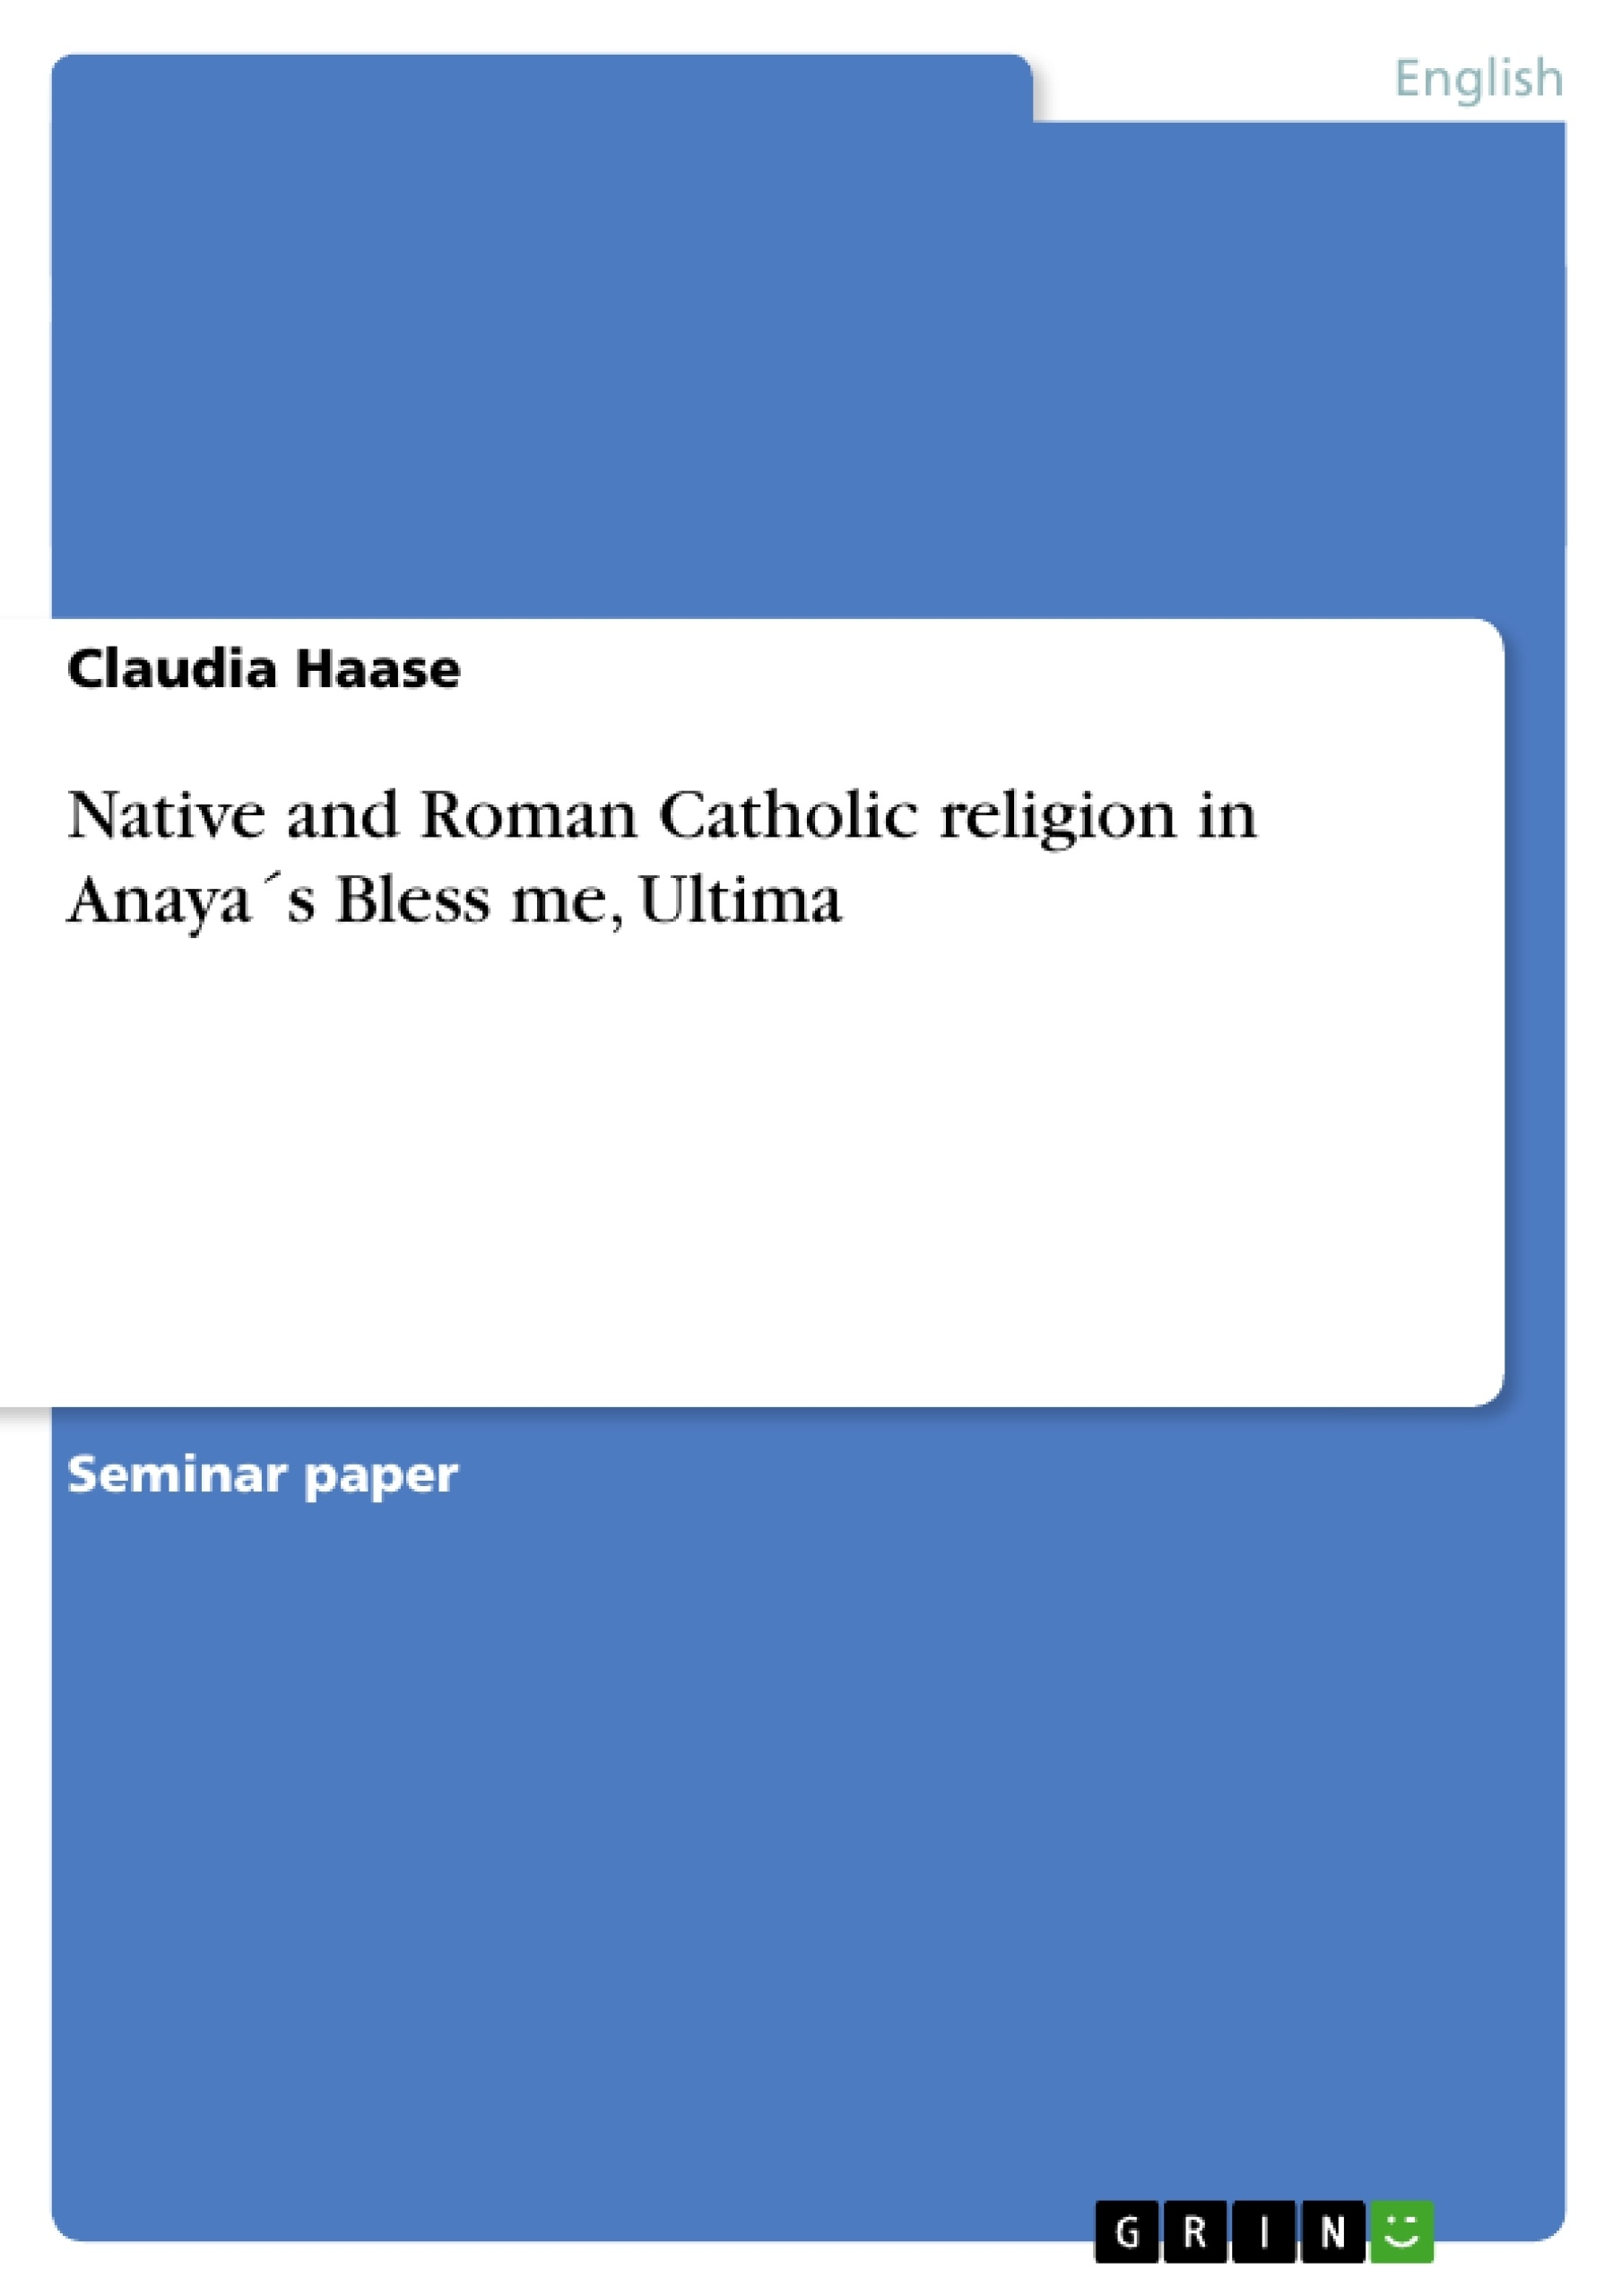 Title: Native and Roman Catholic religion in Anaya´s Bless me, Ultima